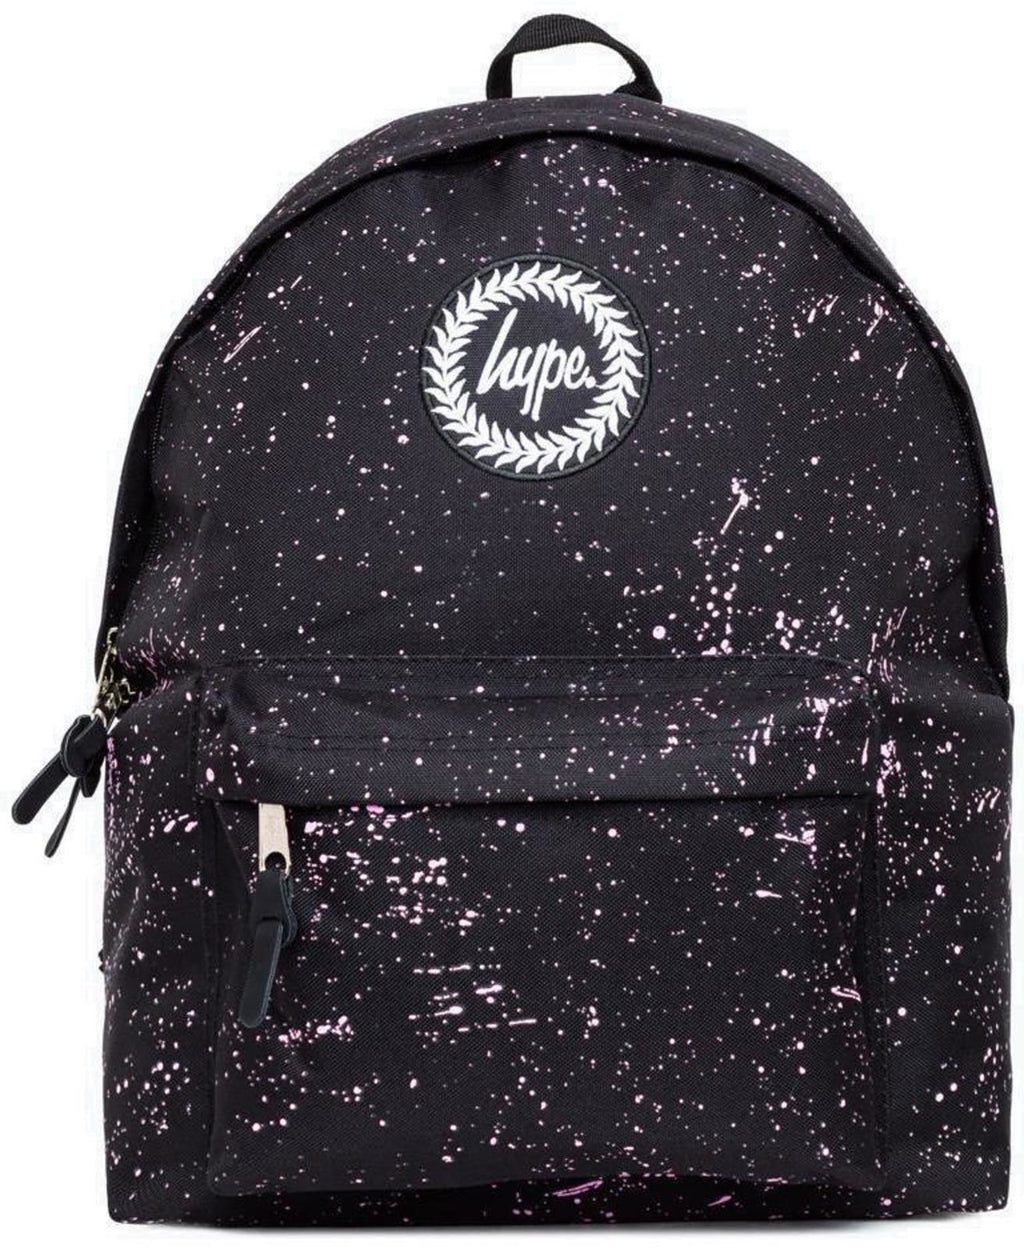 Hype Speckle Backpack Bag Black/Pink